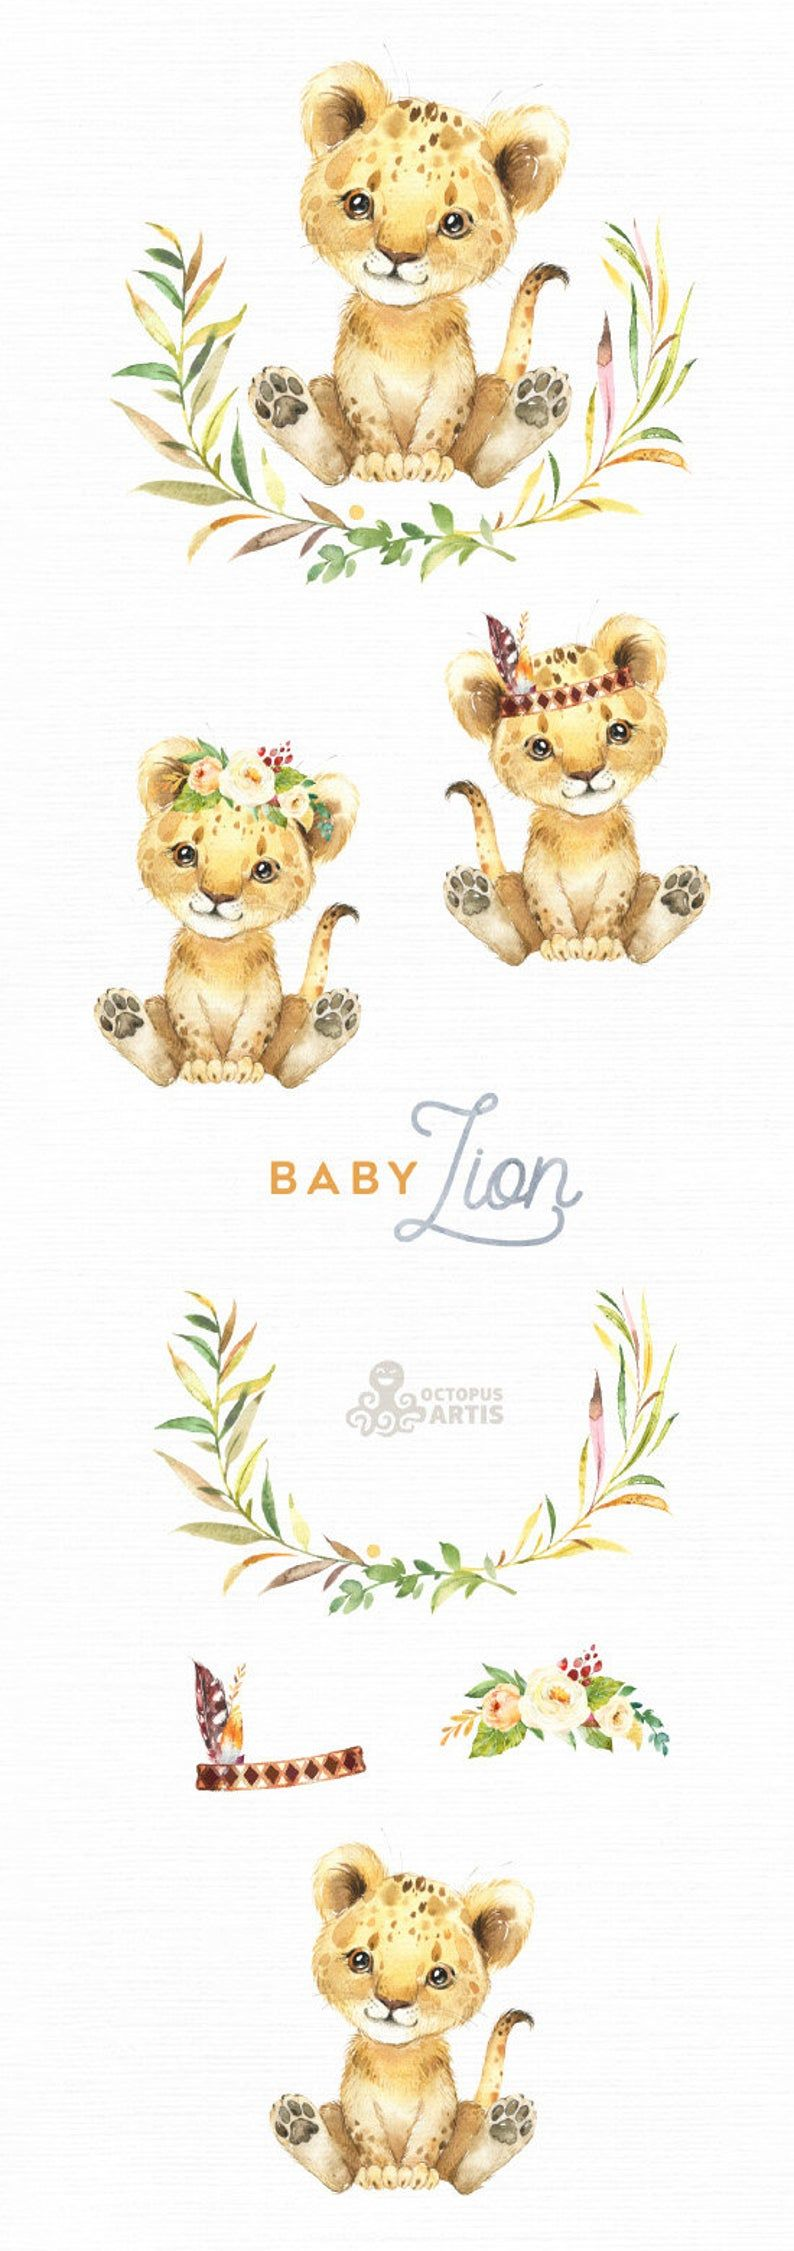 Baby Lion Watercolor Little Animal Clipart Babies Flowers Etsy In 2021 Baby Clip Art Baby Lion Animal Clipart